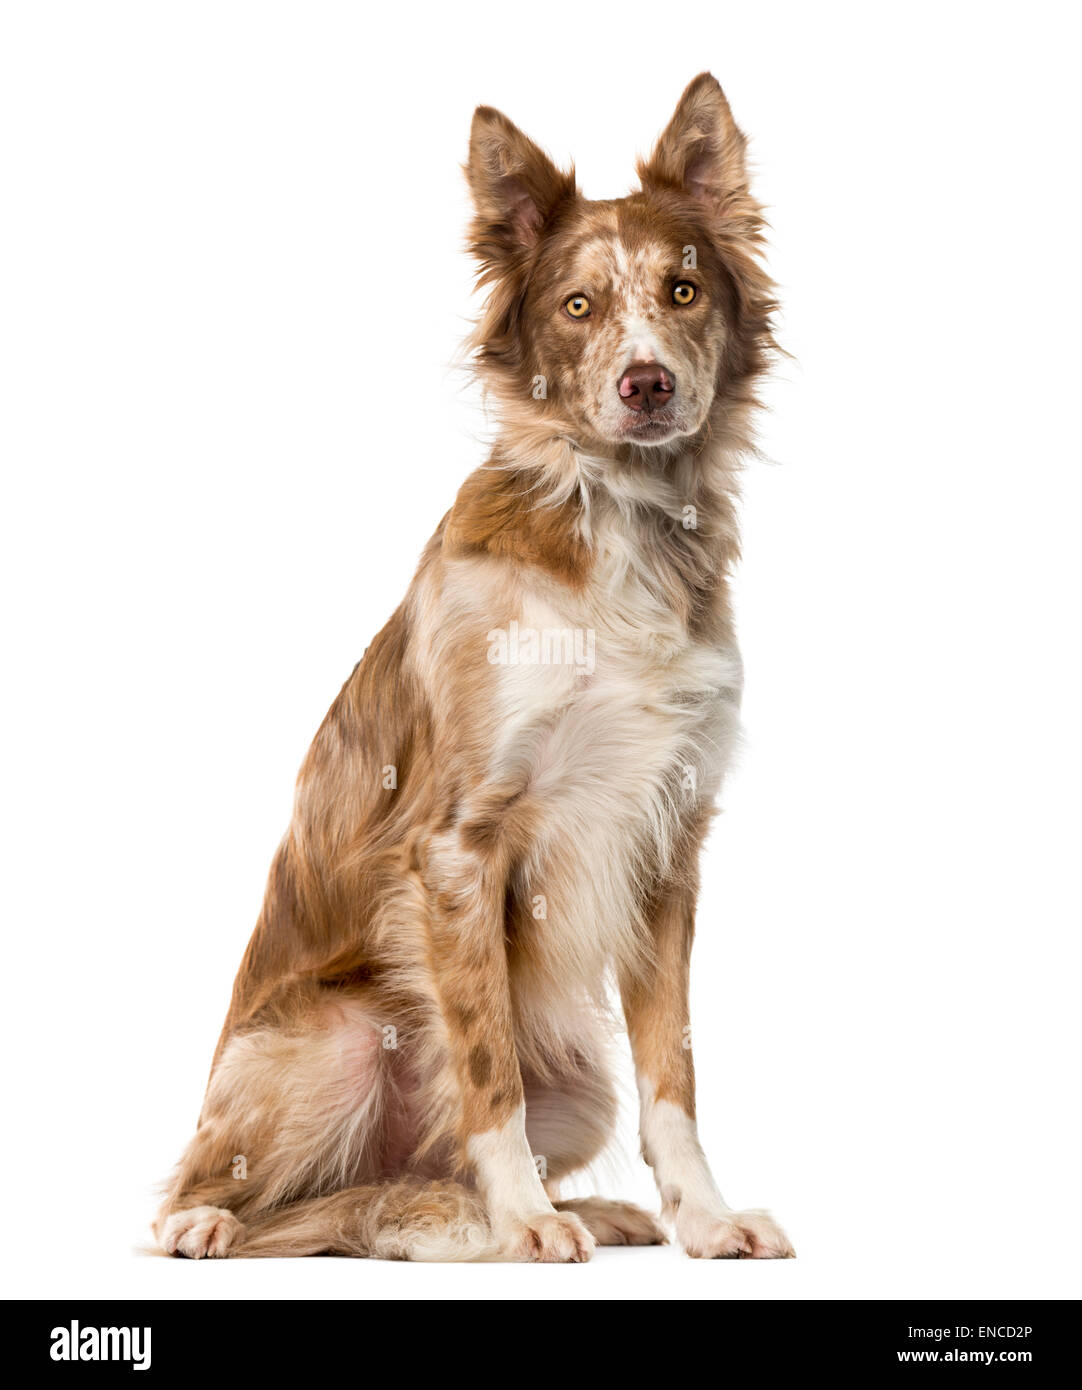 Border Collie (15 years old) in front of a white background - Stock Image